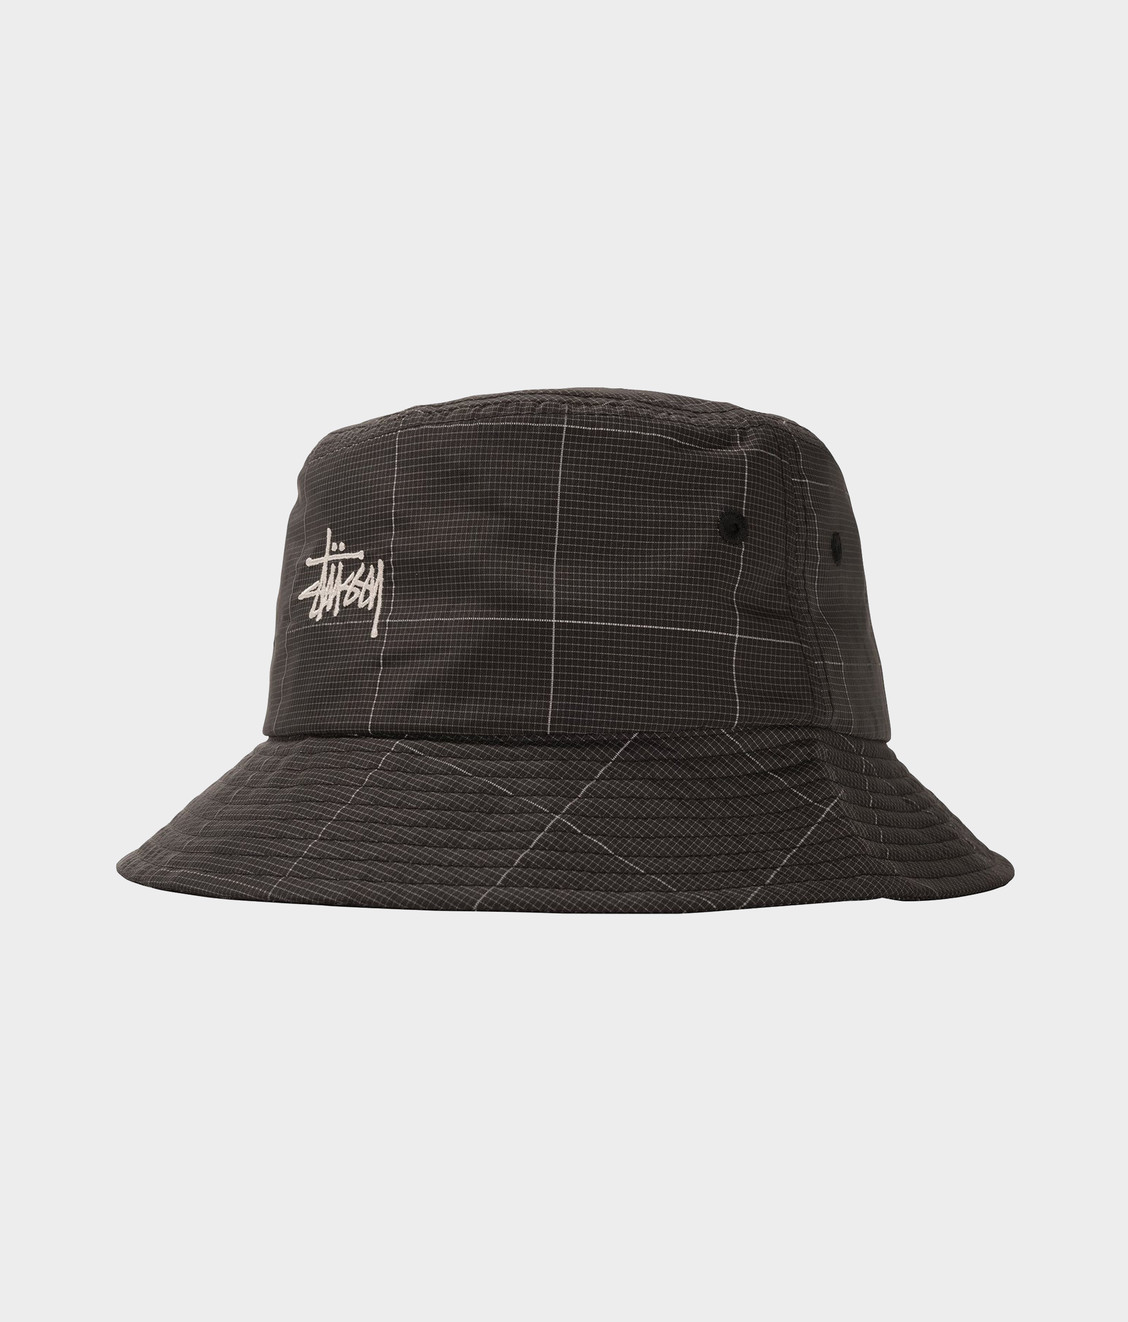 Stussy Stussy Reflective Window Pane Bucket Black